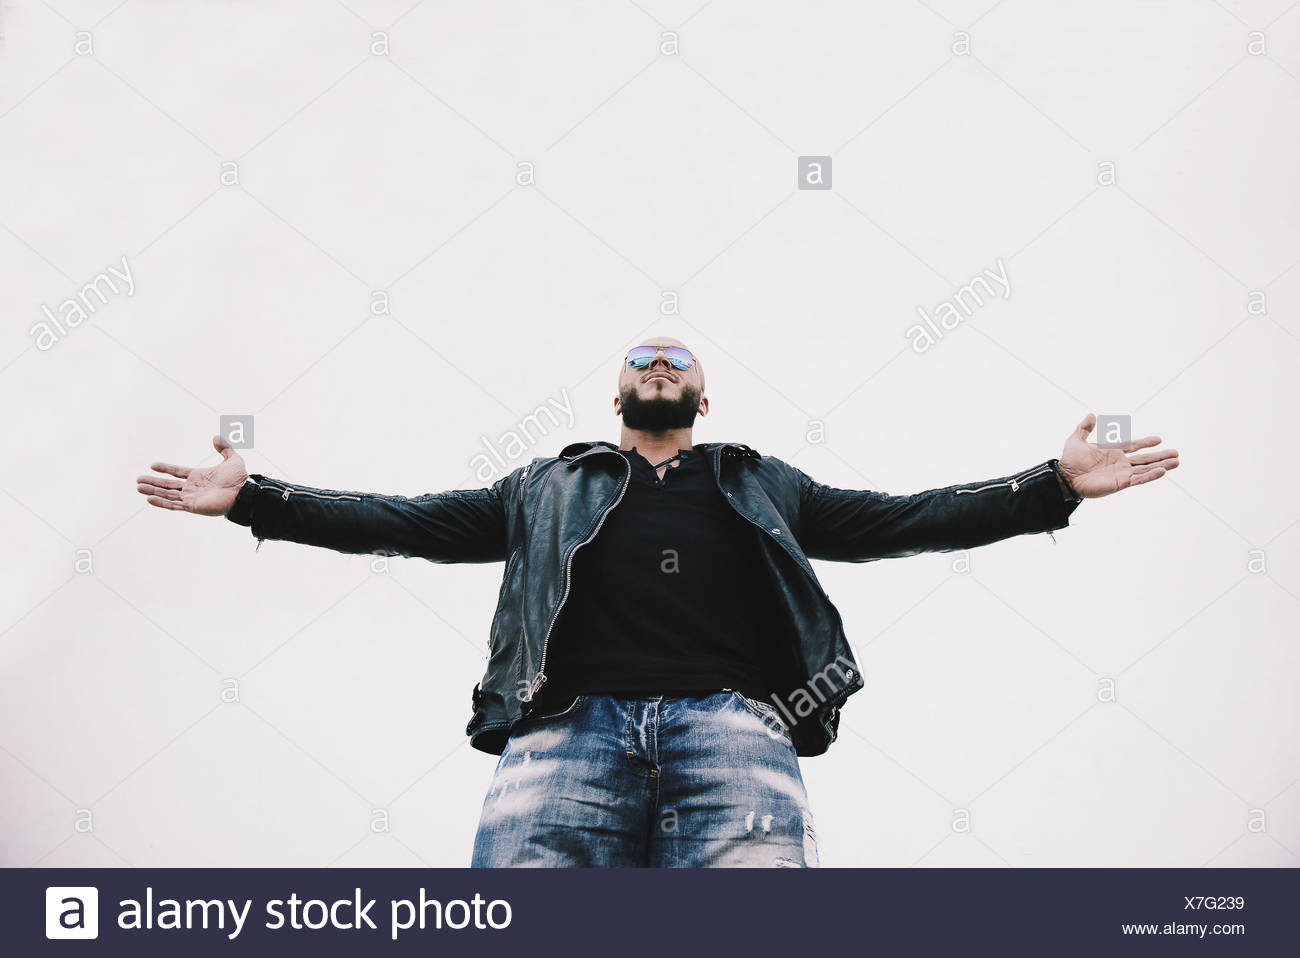 Low angle view of a cool man with arms outstretched Photo Stock